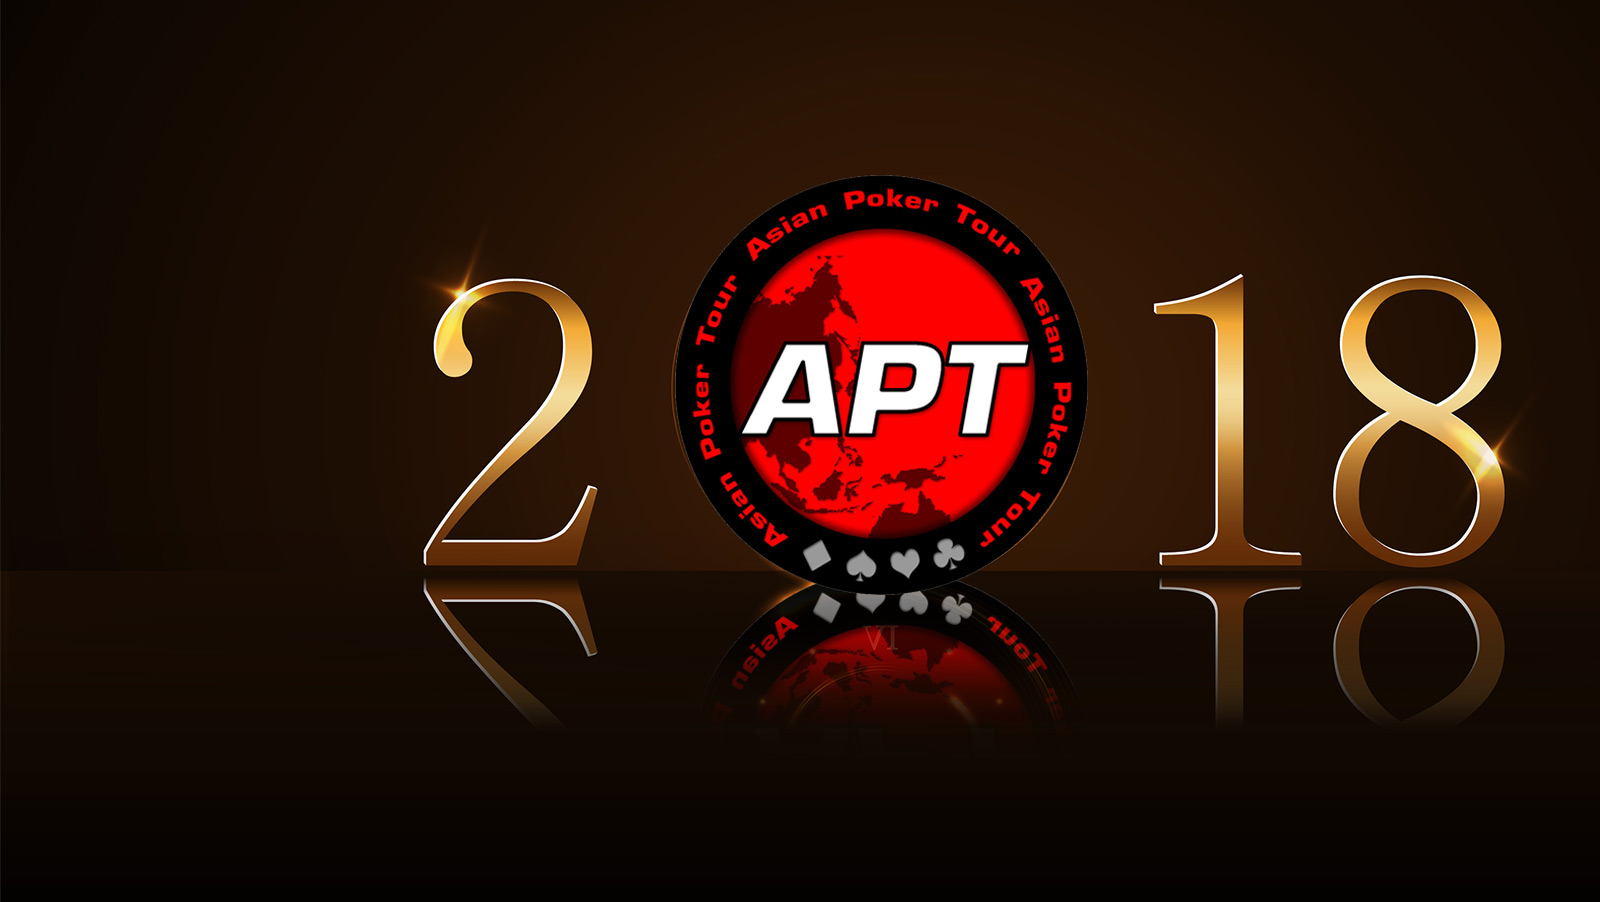 The Asian Poker Tour in 2018